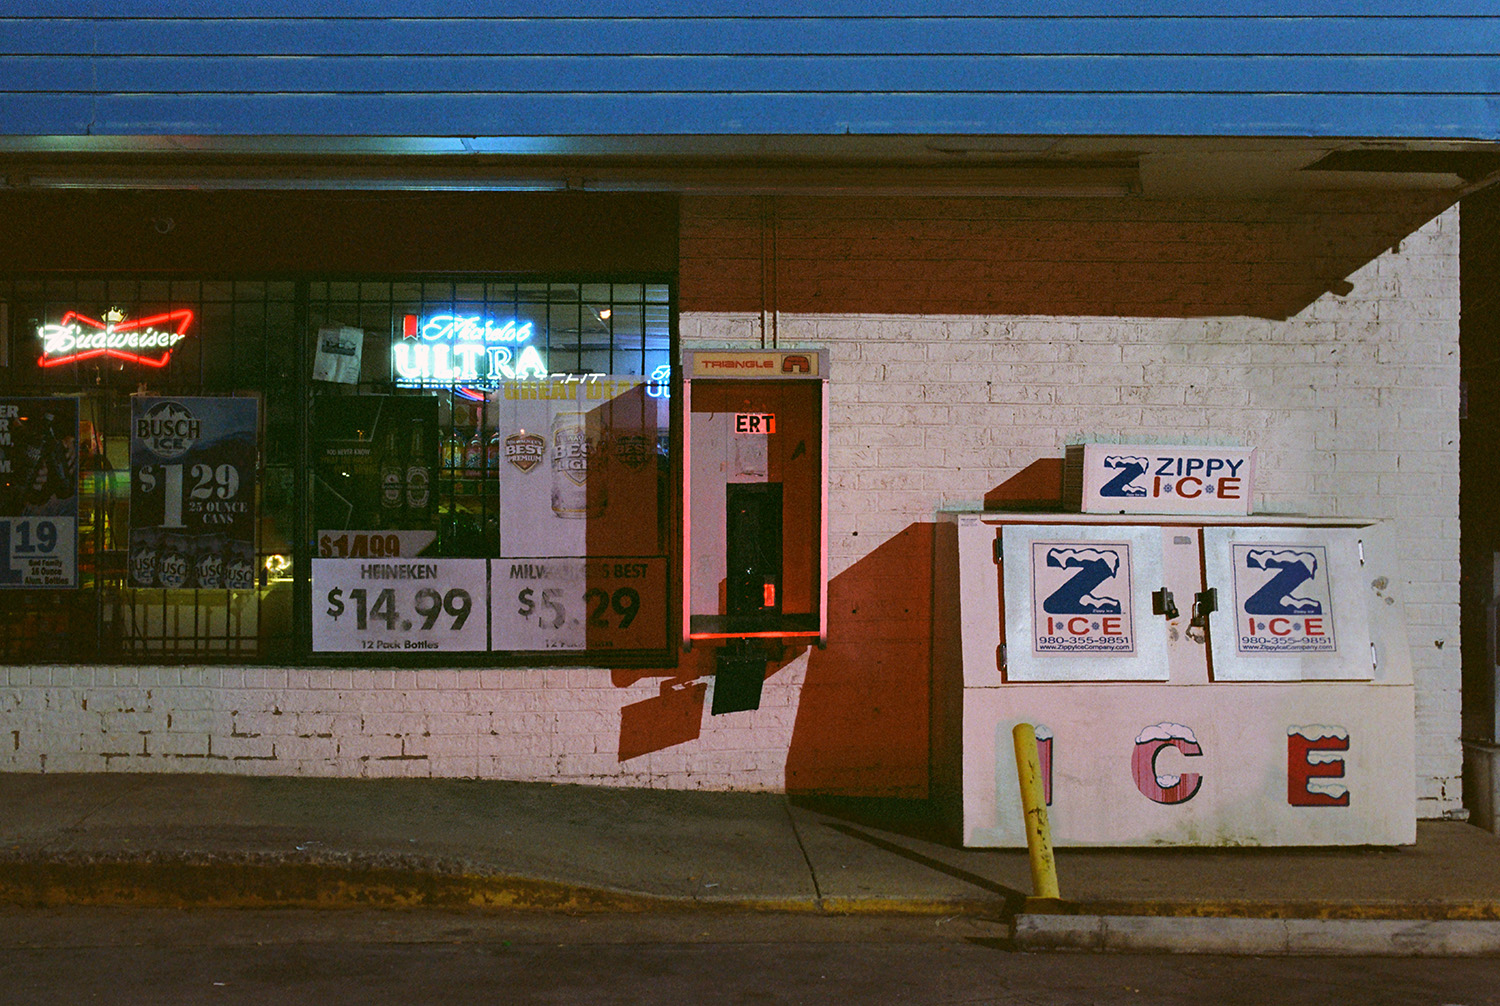 One Stop Express with Zippy Ice  Rock Hill, SC 35mm film 2019